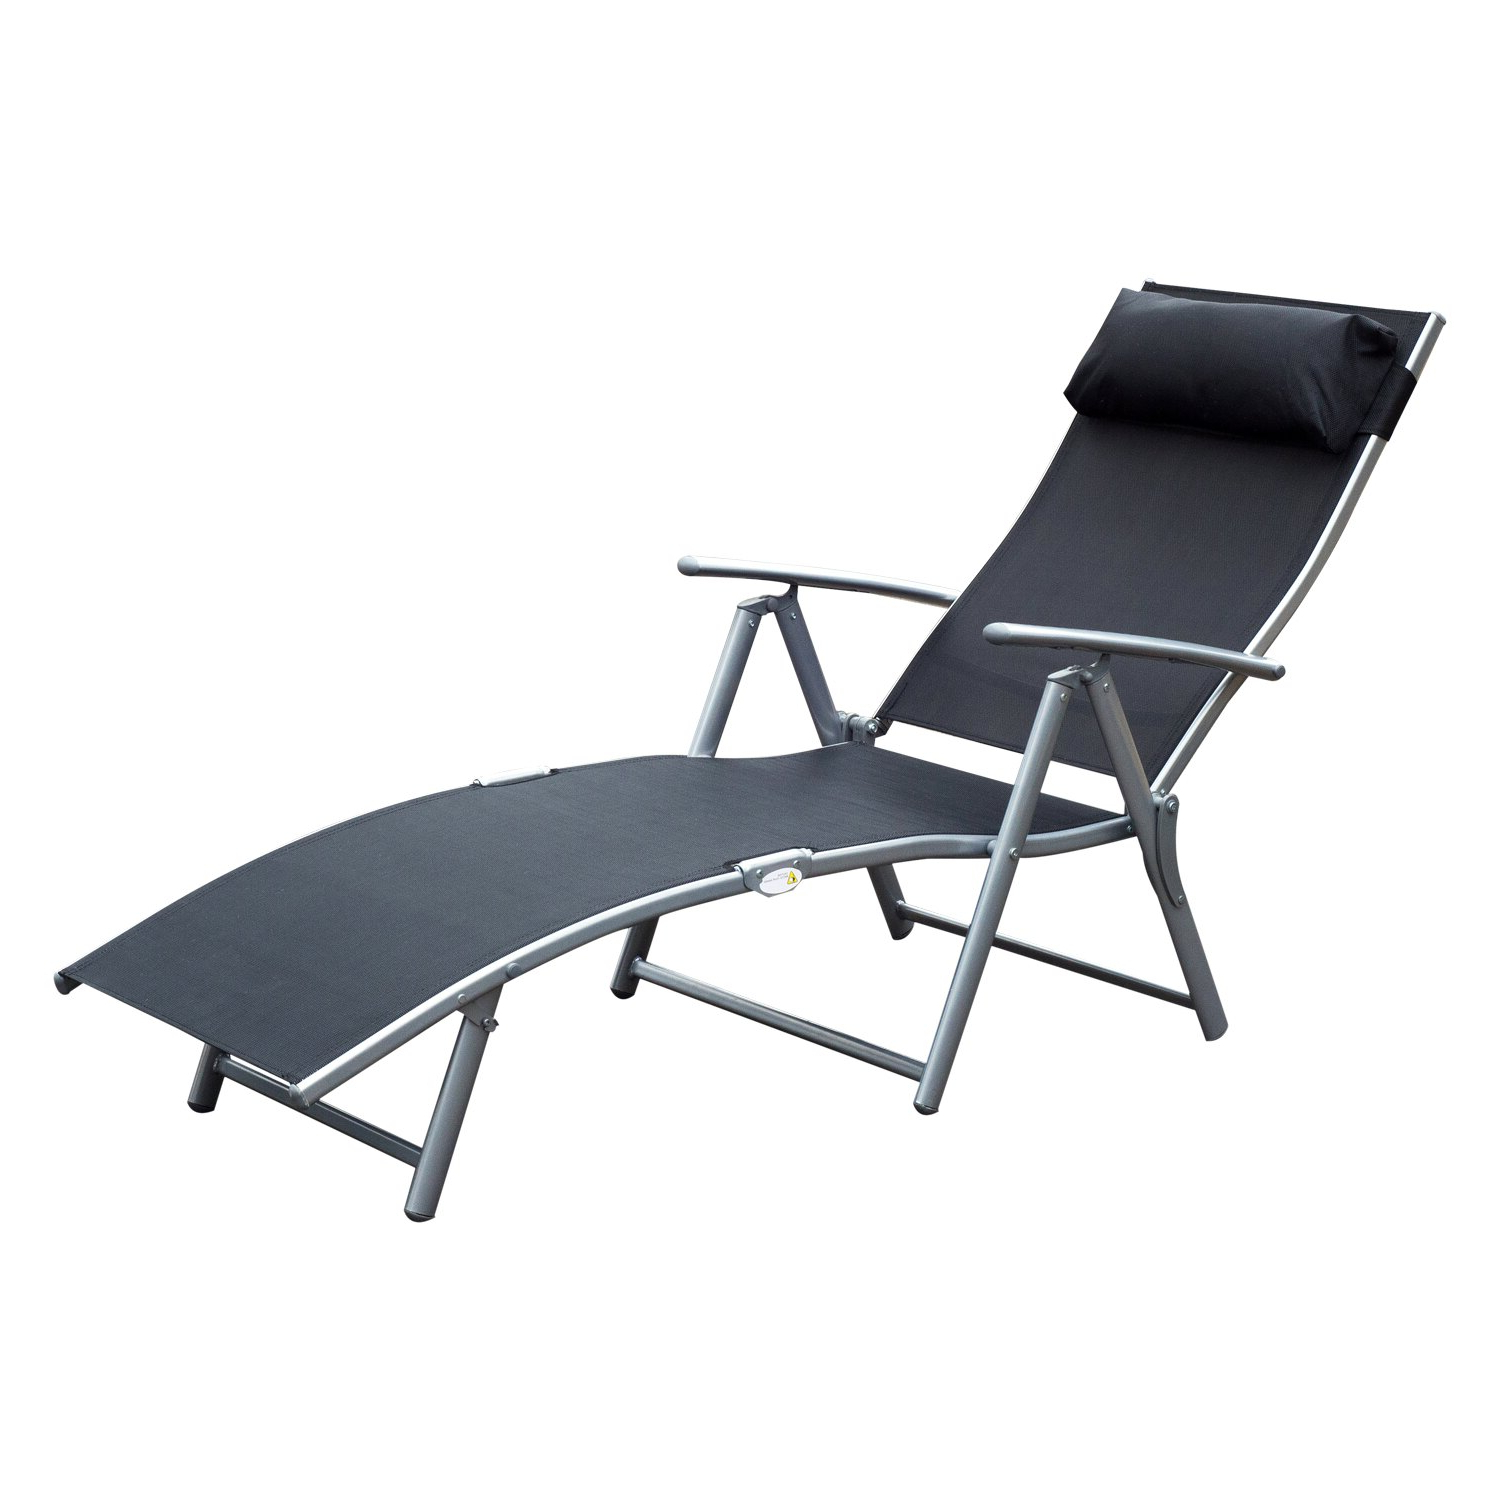 Outsunny Sling Fabric Patio Reclining Chaise Lounge Chair Folding 5 Position Adjustable Outdoor Deck With Cushion – Black In Most Popular Reclining Sling Chaise Lounges (View 5 of 25)